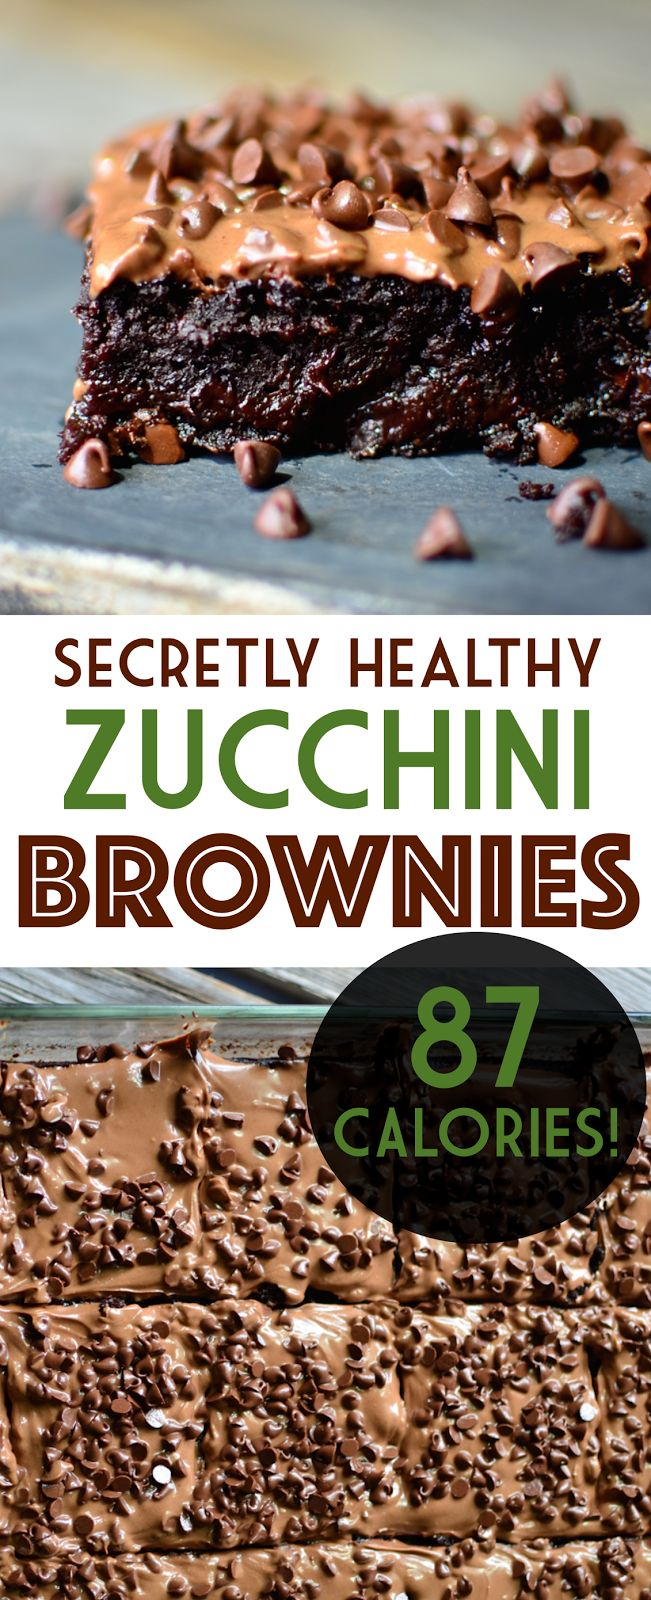 Have you ever wished you could have a huge, luscious, rich, gooey, chocolatey brownie for under 100 calories?